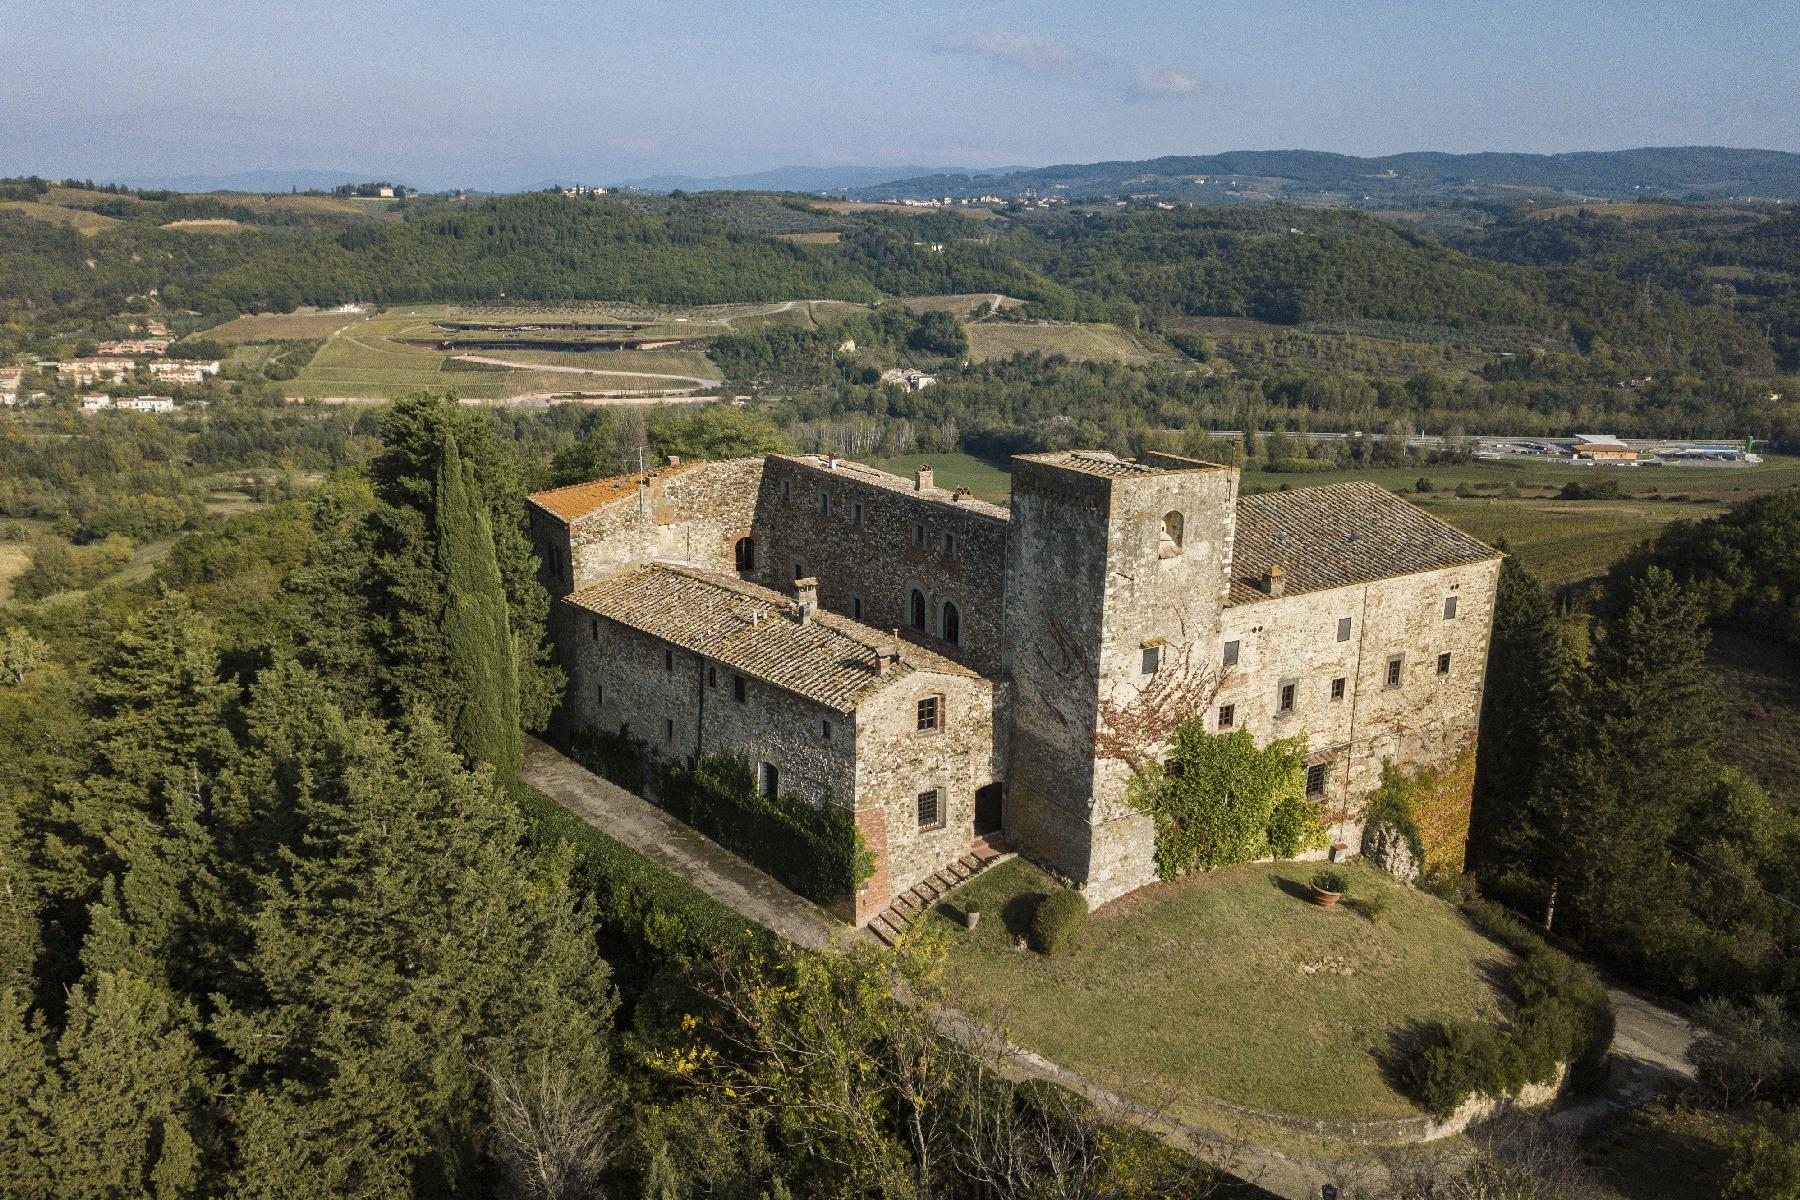 Renaissance castle in the Florentine Chianti hills - 40